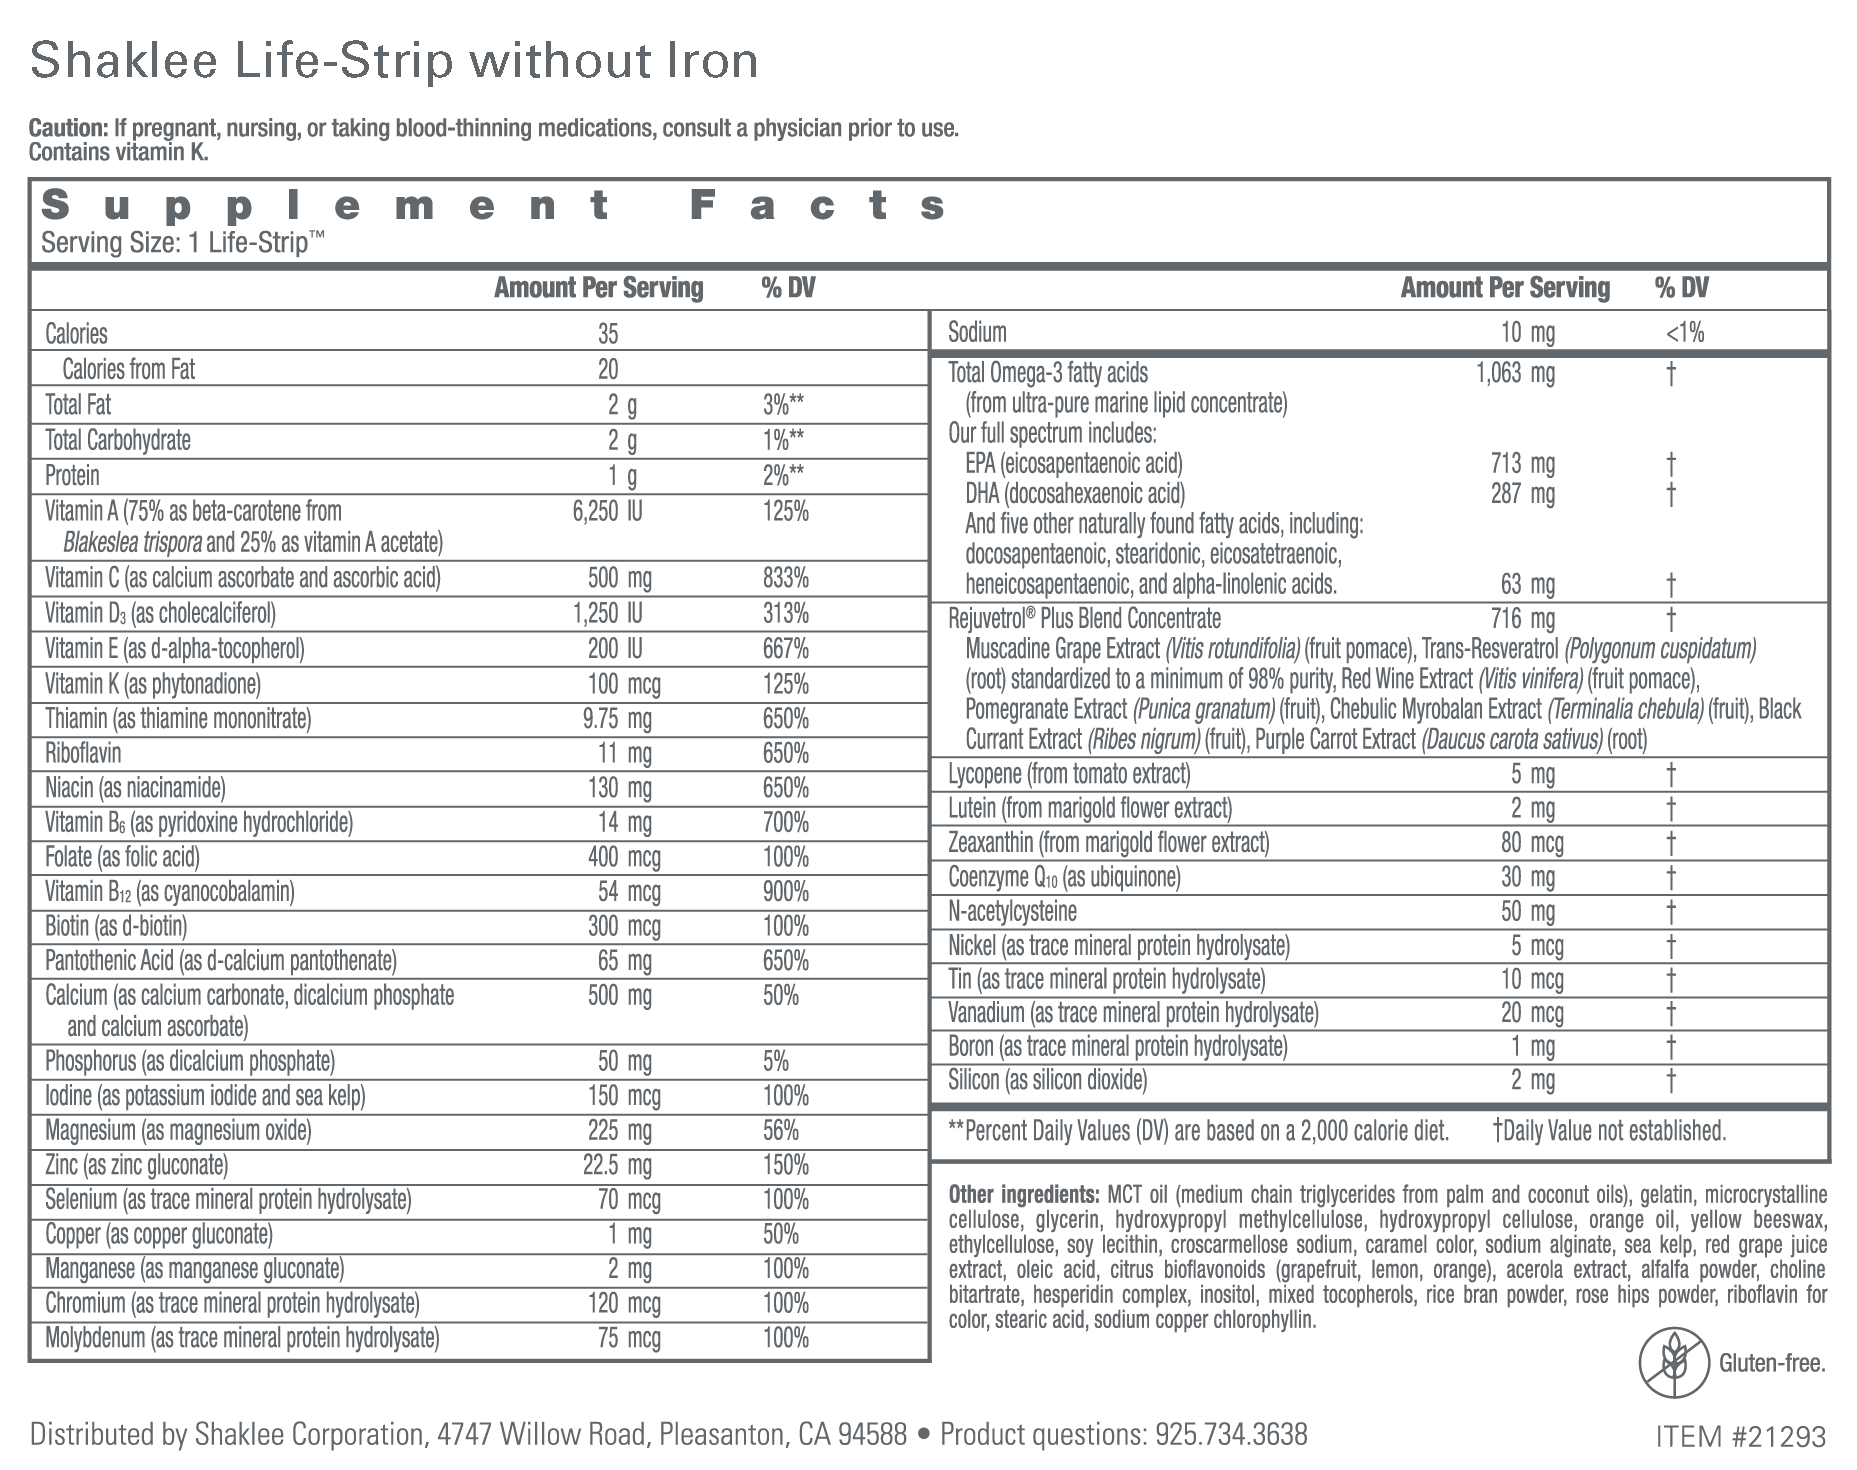 Shaklee Life-Strip without Iron Label